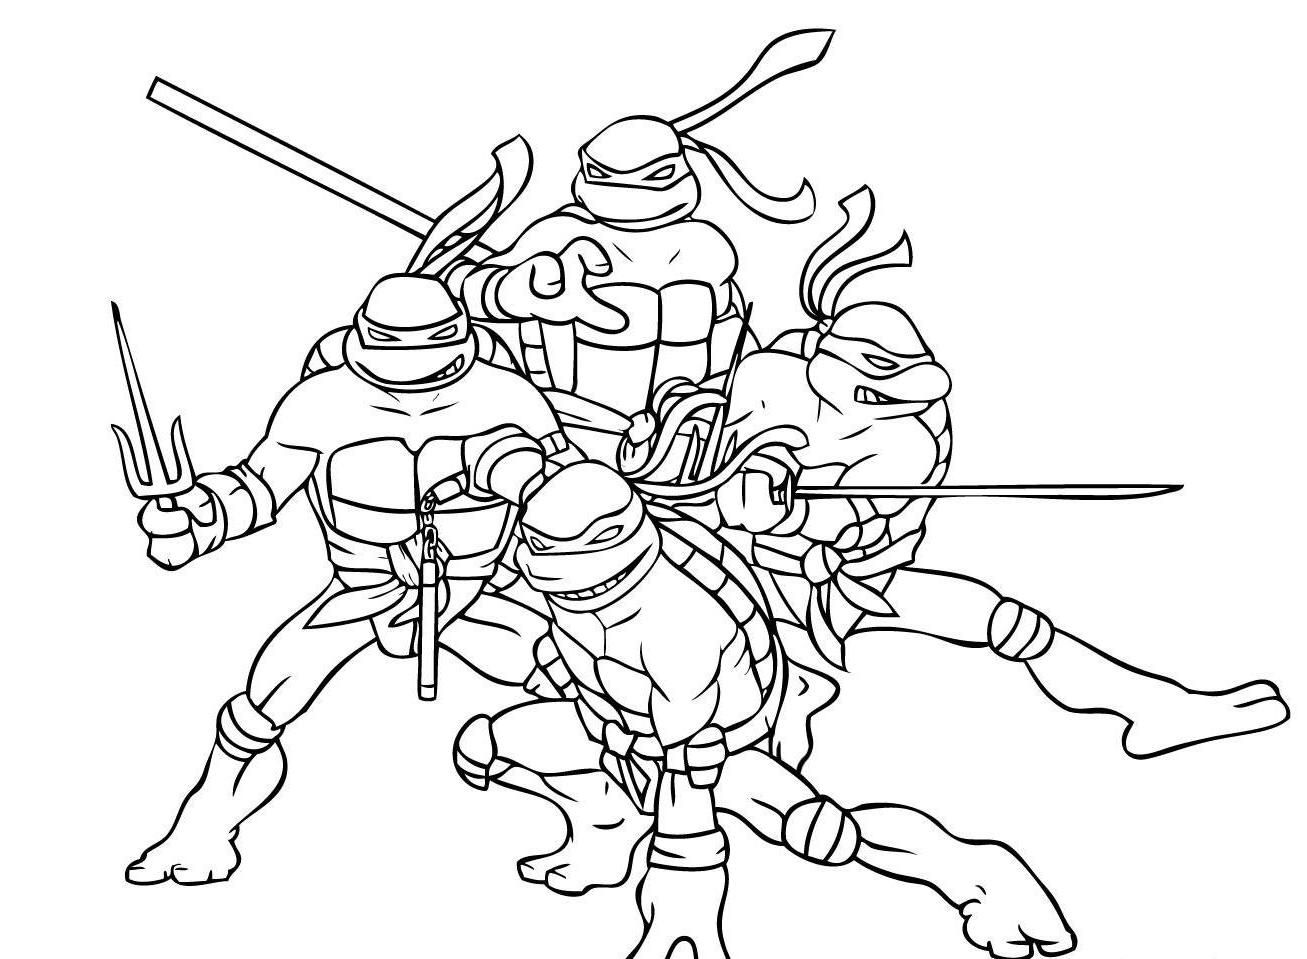 The Ninja Turtles Coloring Pages | 80s Cartoons Colouring Pages ...